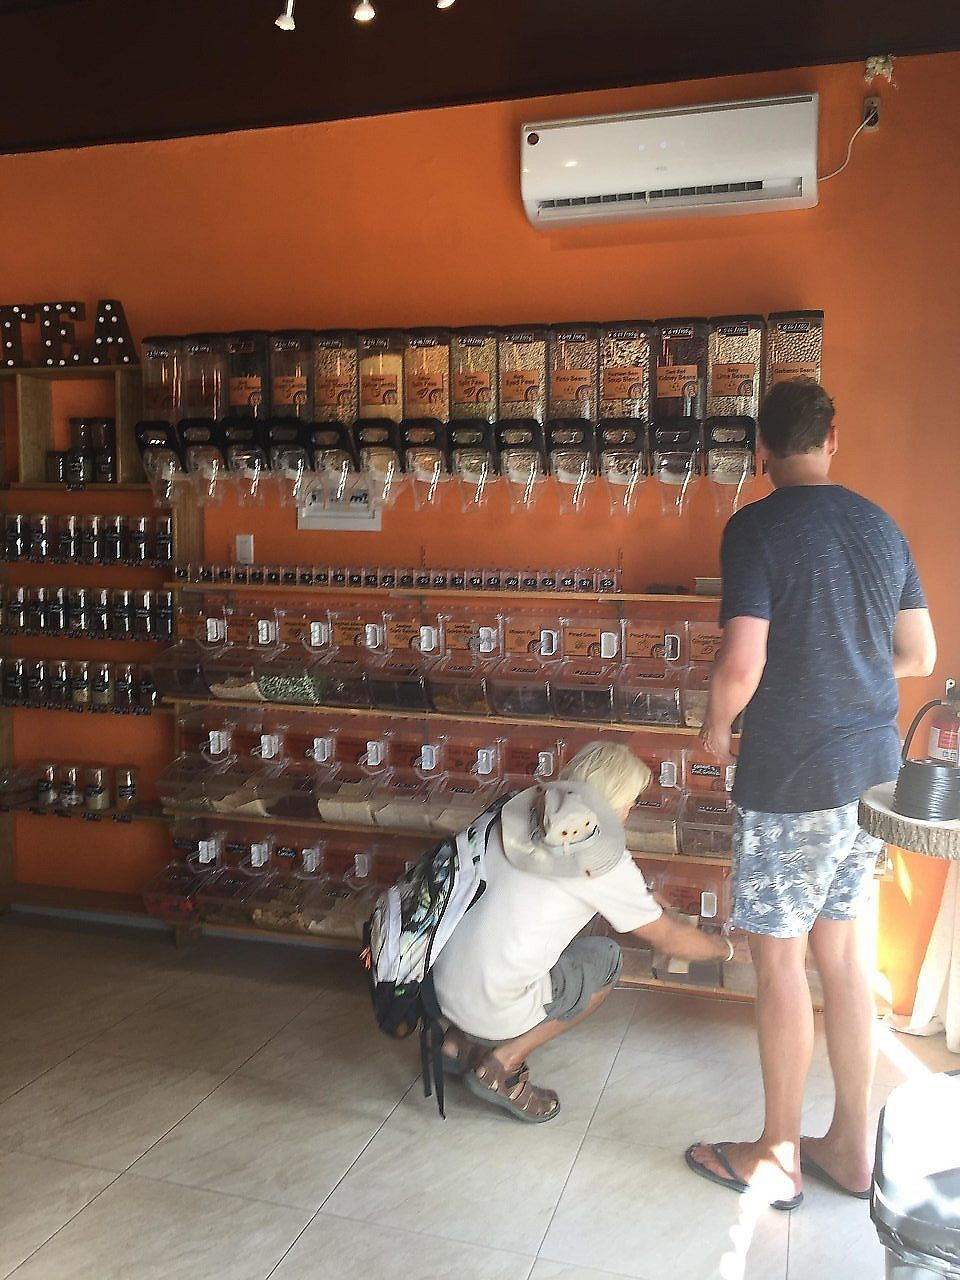 """Photo of Peanuts Fresh Market Cafe  by <a href=""""/members/profile/Eefie"""">Eefie</a> <br/>All kinds of seeds, flours, grains, tea <br/> December 27, 2017  - <a href='/contact/abuse/image/107619/339800'>Report</a>"""